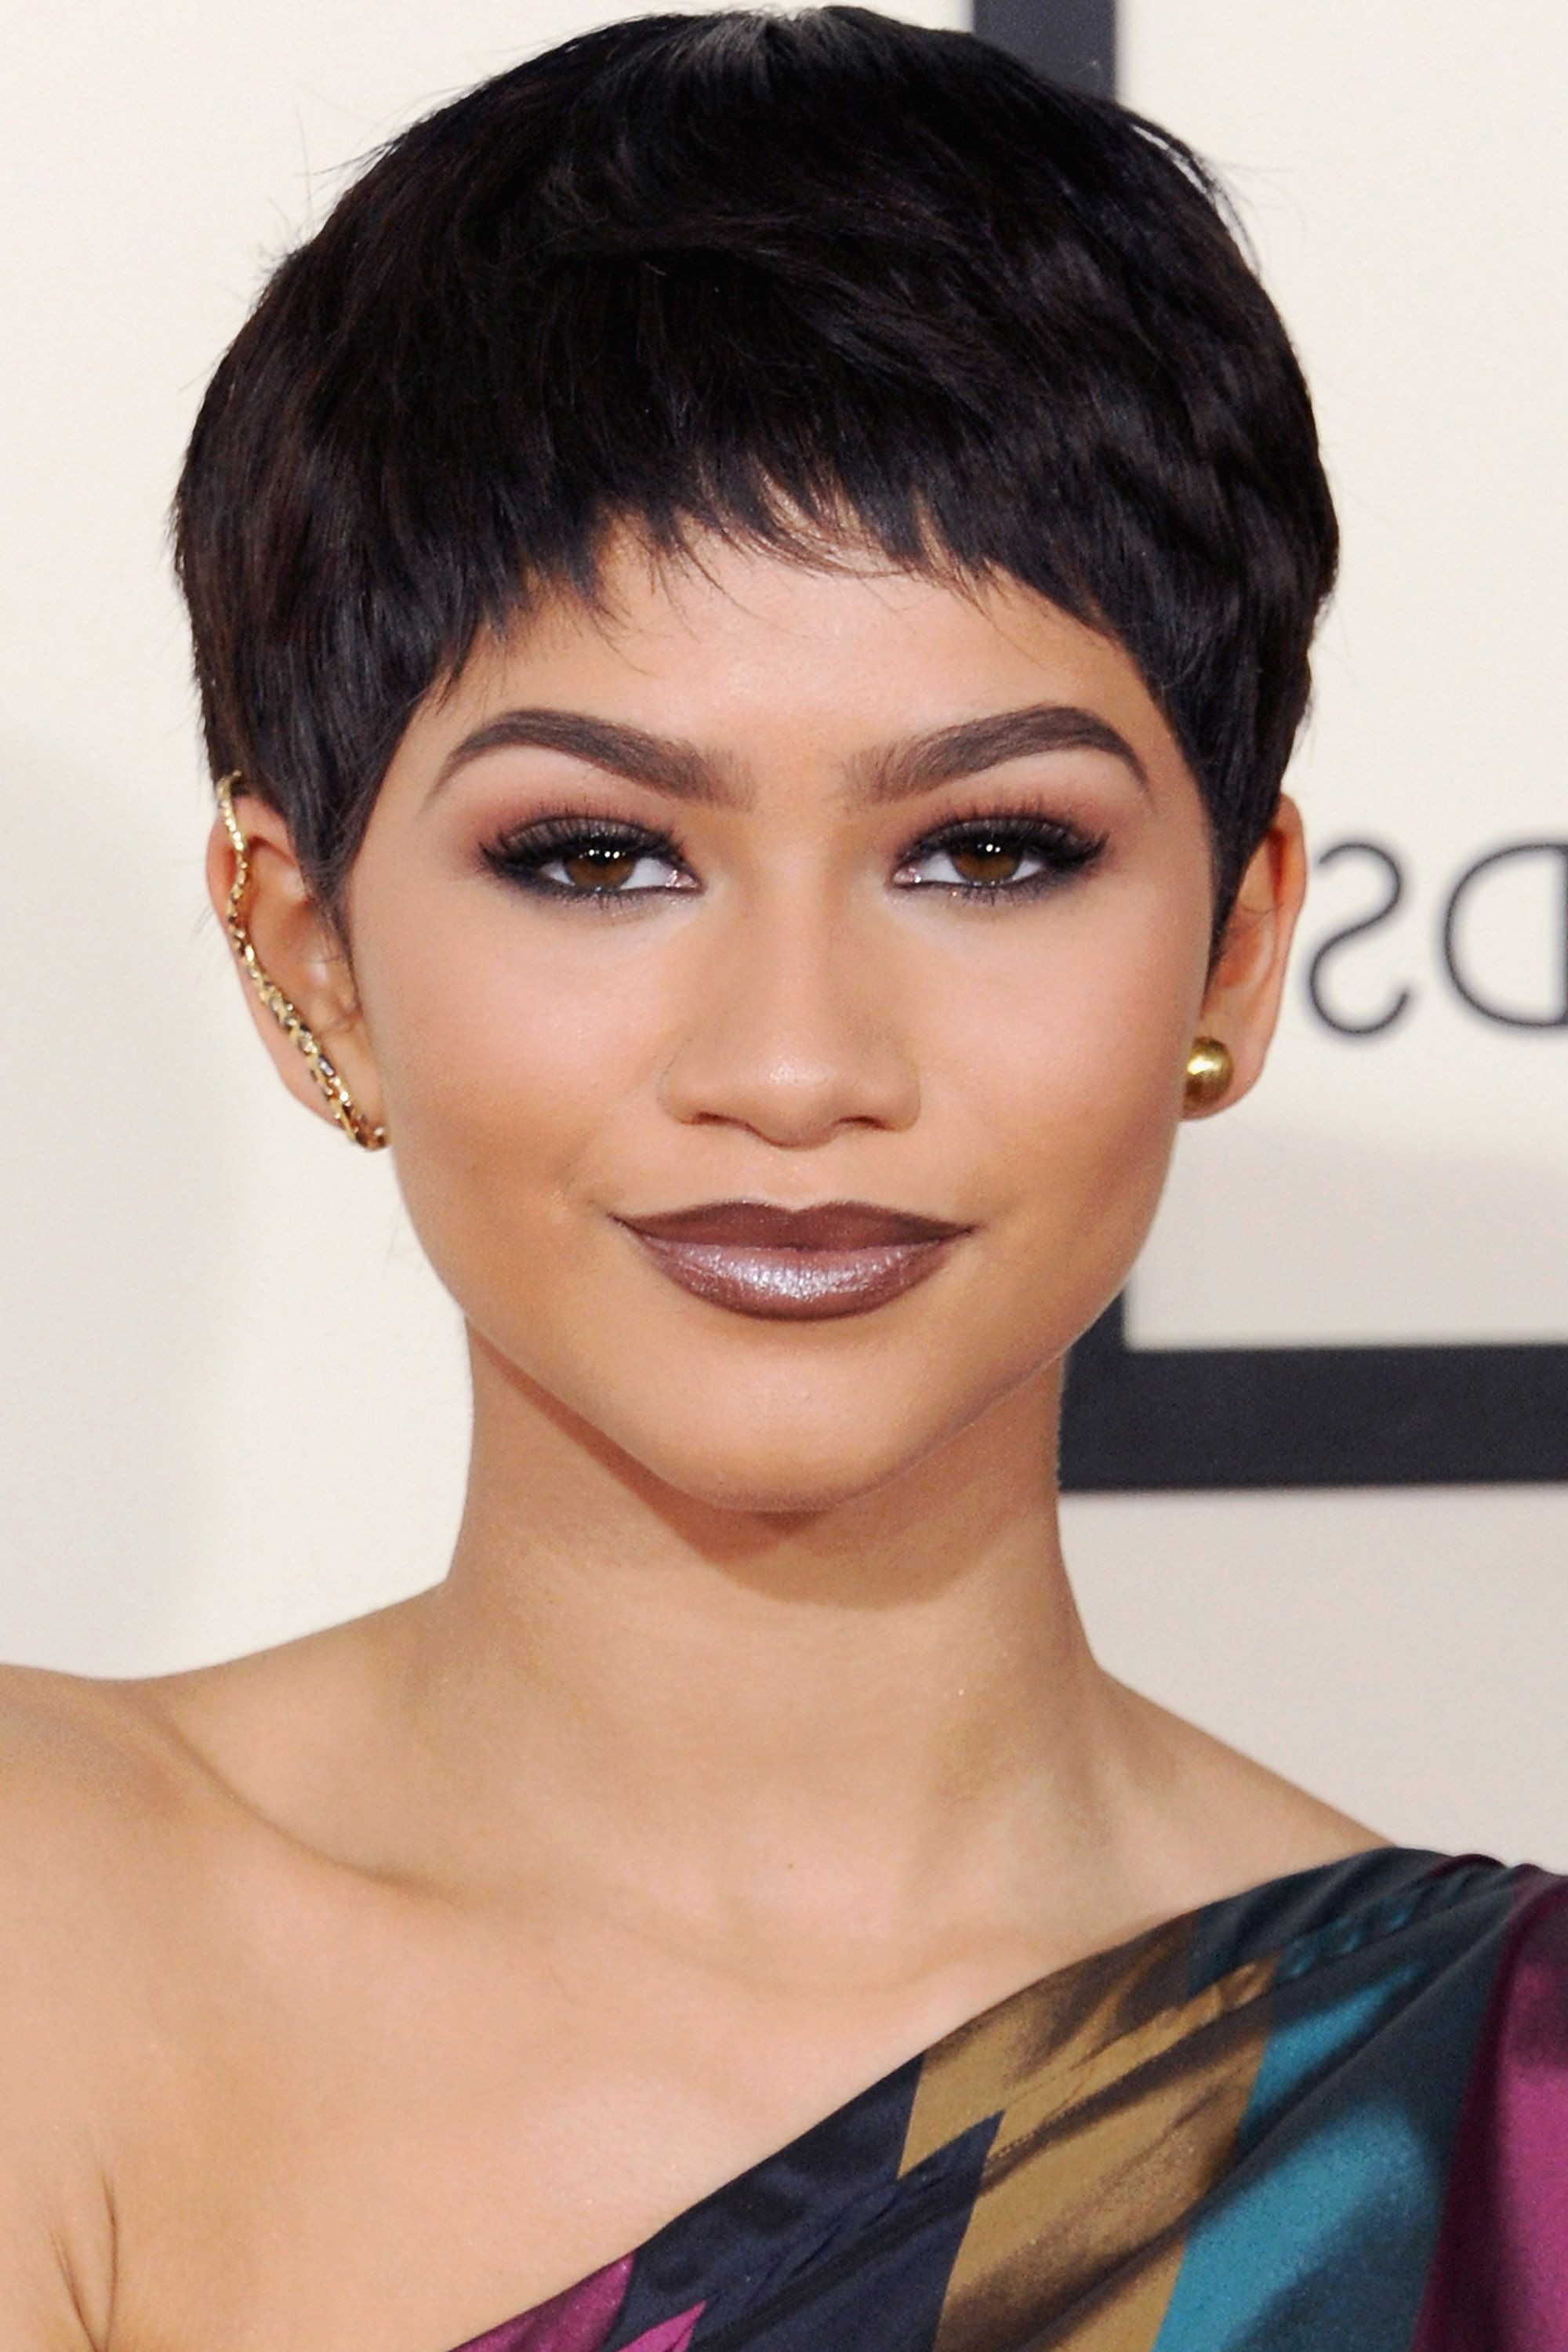 50+ Pixie Cuts We Love For 2018 – Short Pixie Hairstyles From With Summer Short Haircuts (View 8 of 25)